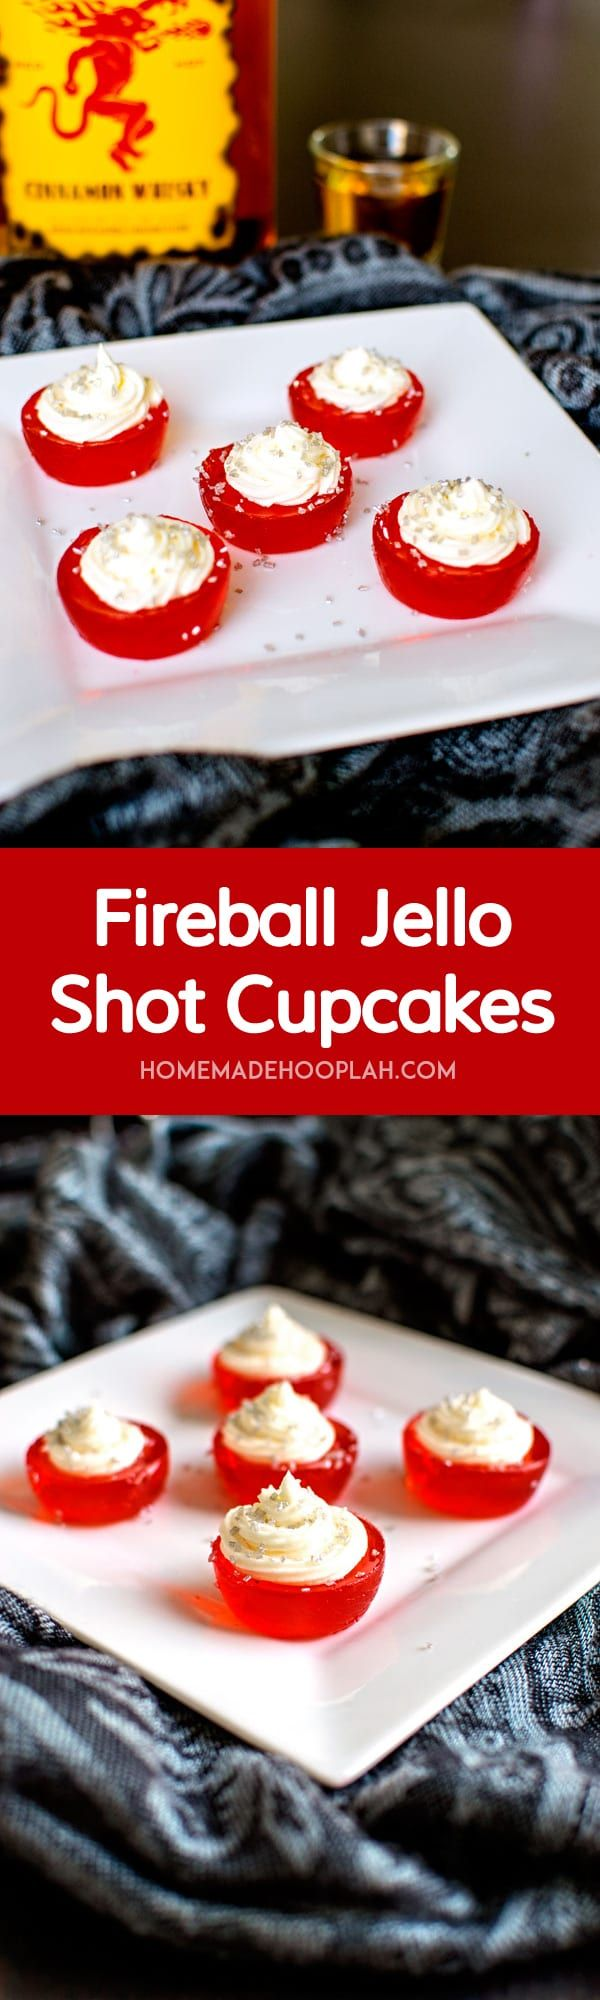 Fireball Jello Shot Cupcakes! Fireball jello shots infused with spicy taste of Fireball Whisky and topped with Fireball butter cream frosting. Another way to warm up your holiday! | HomemadeHooplah.com